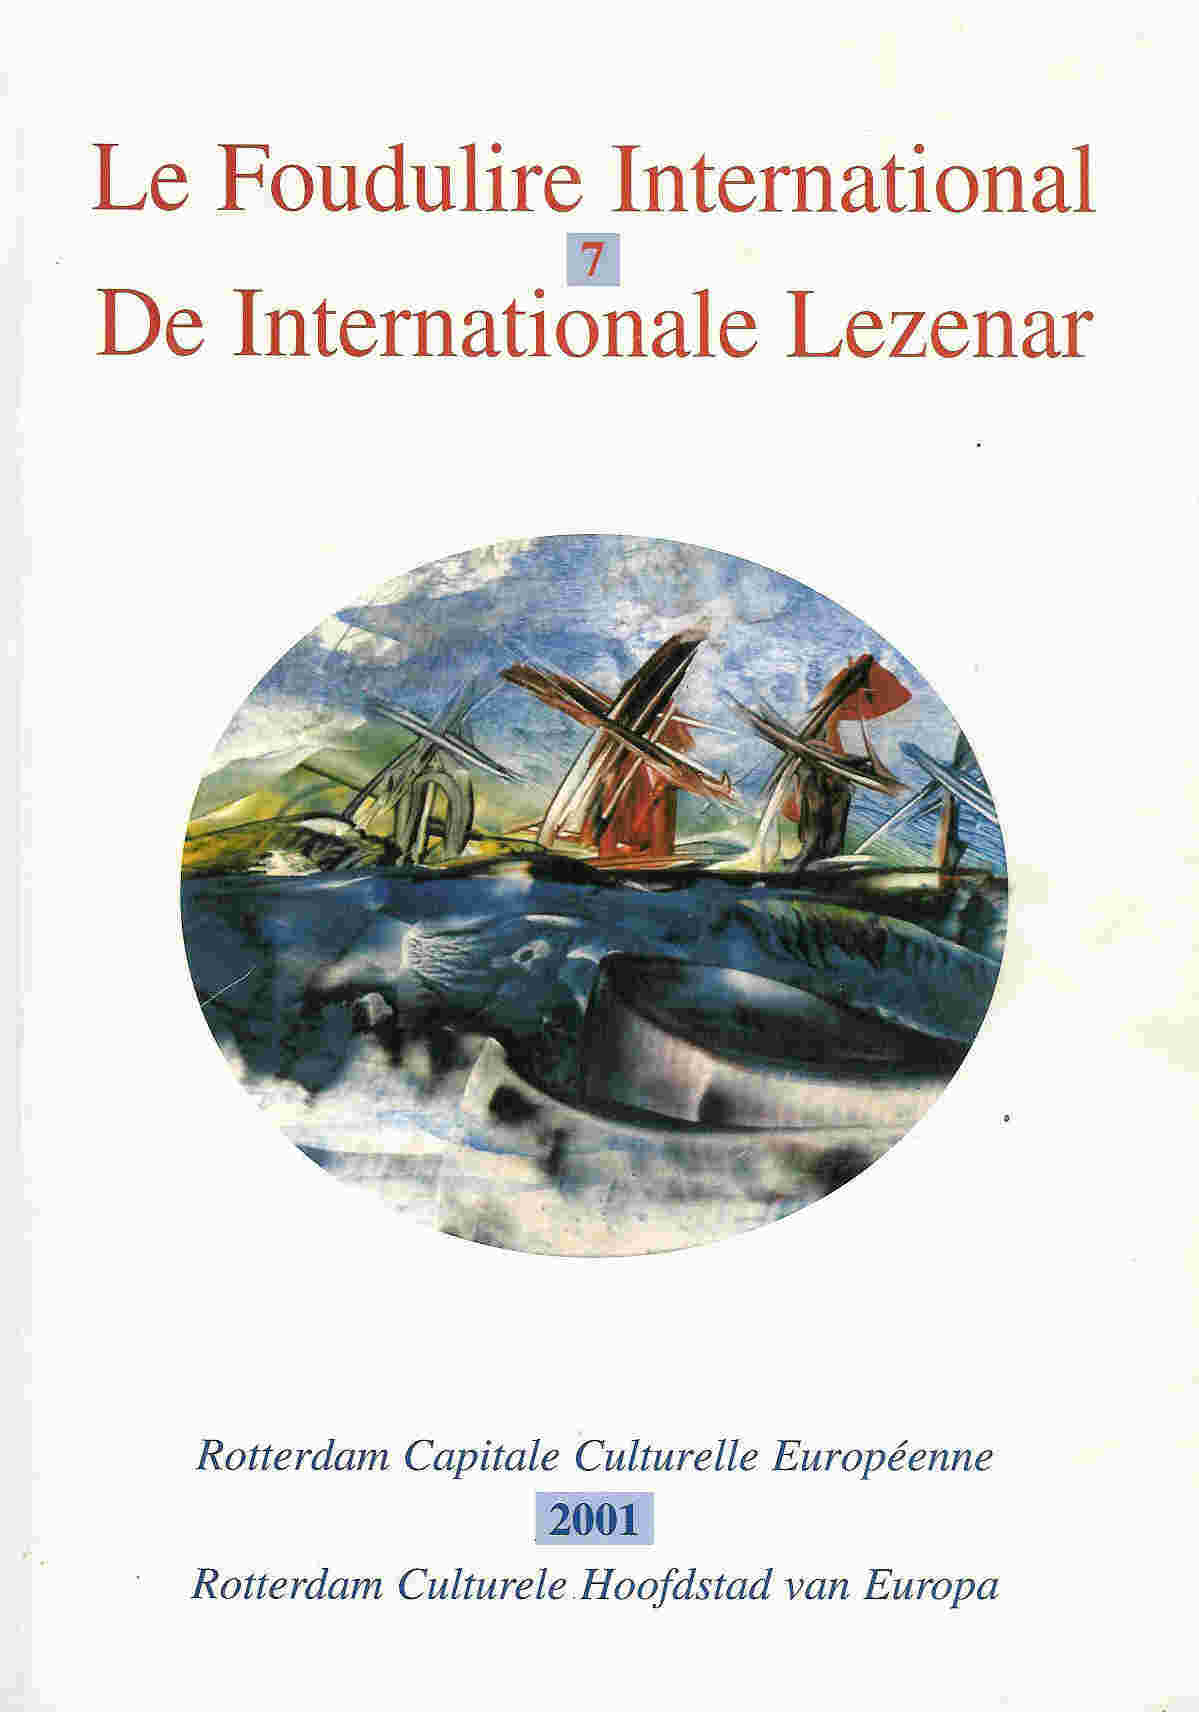 Le Foudulire International 7, Villefontaine 2001